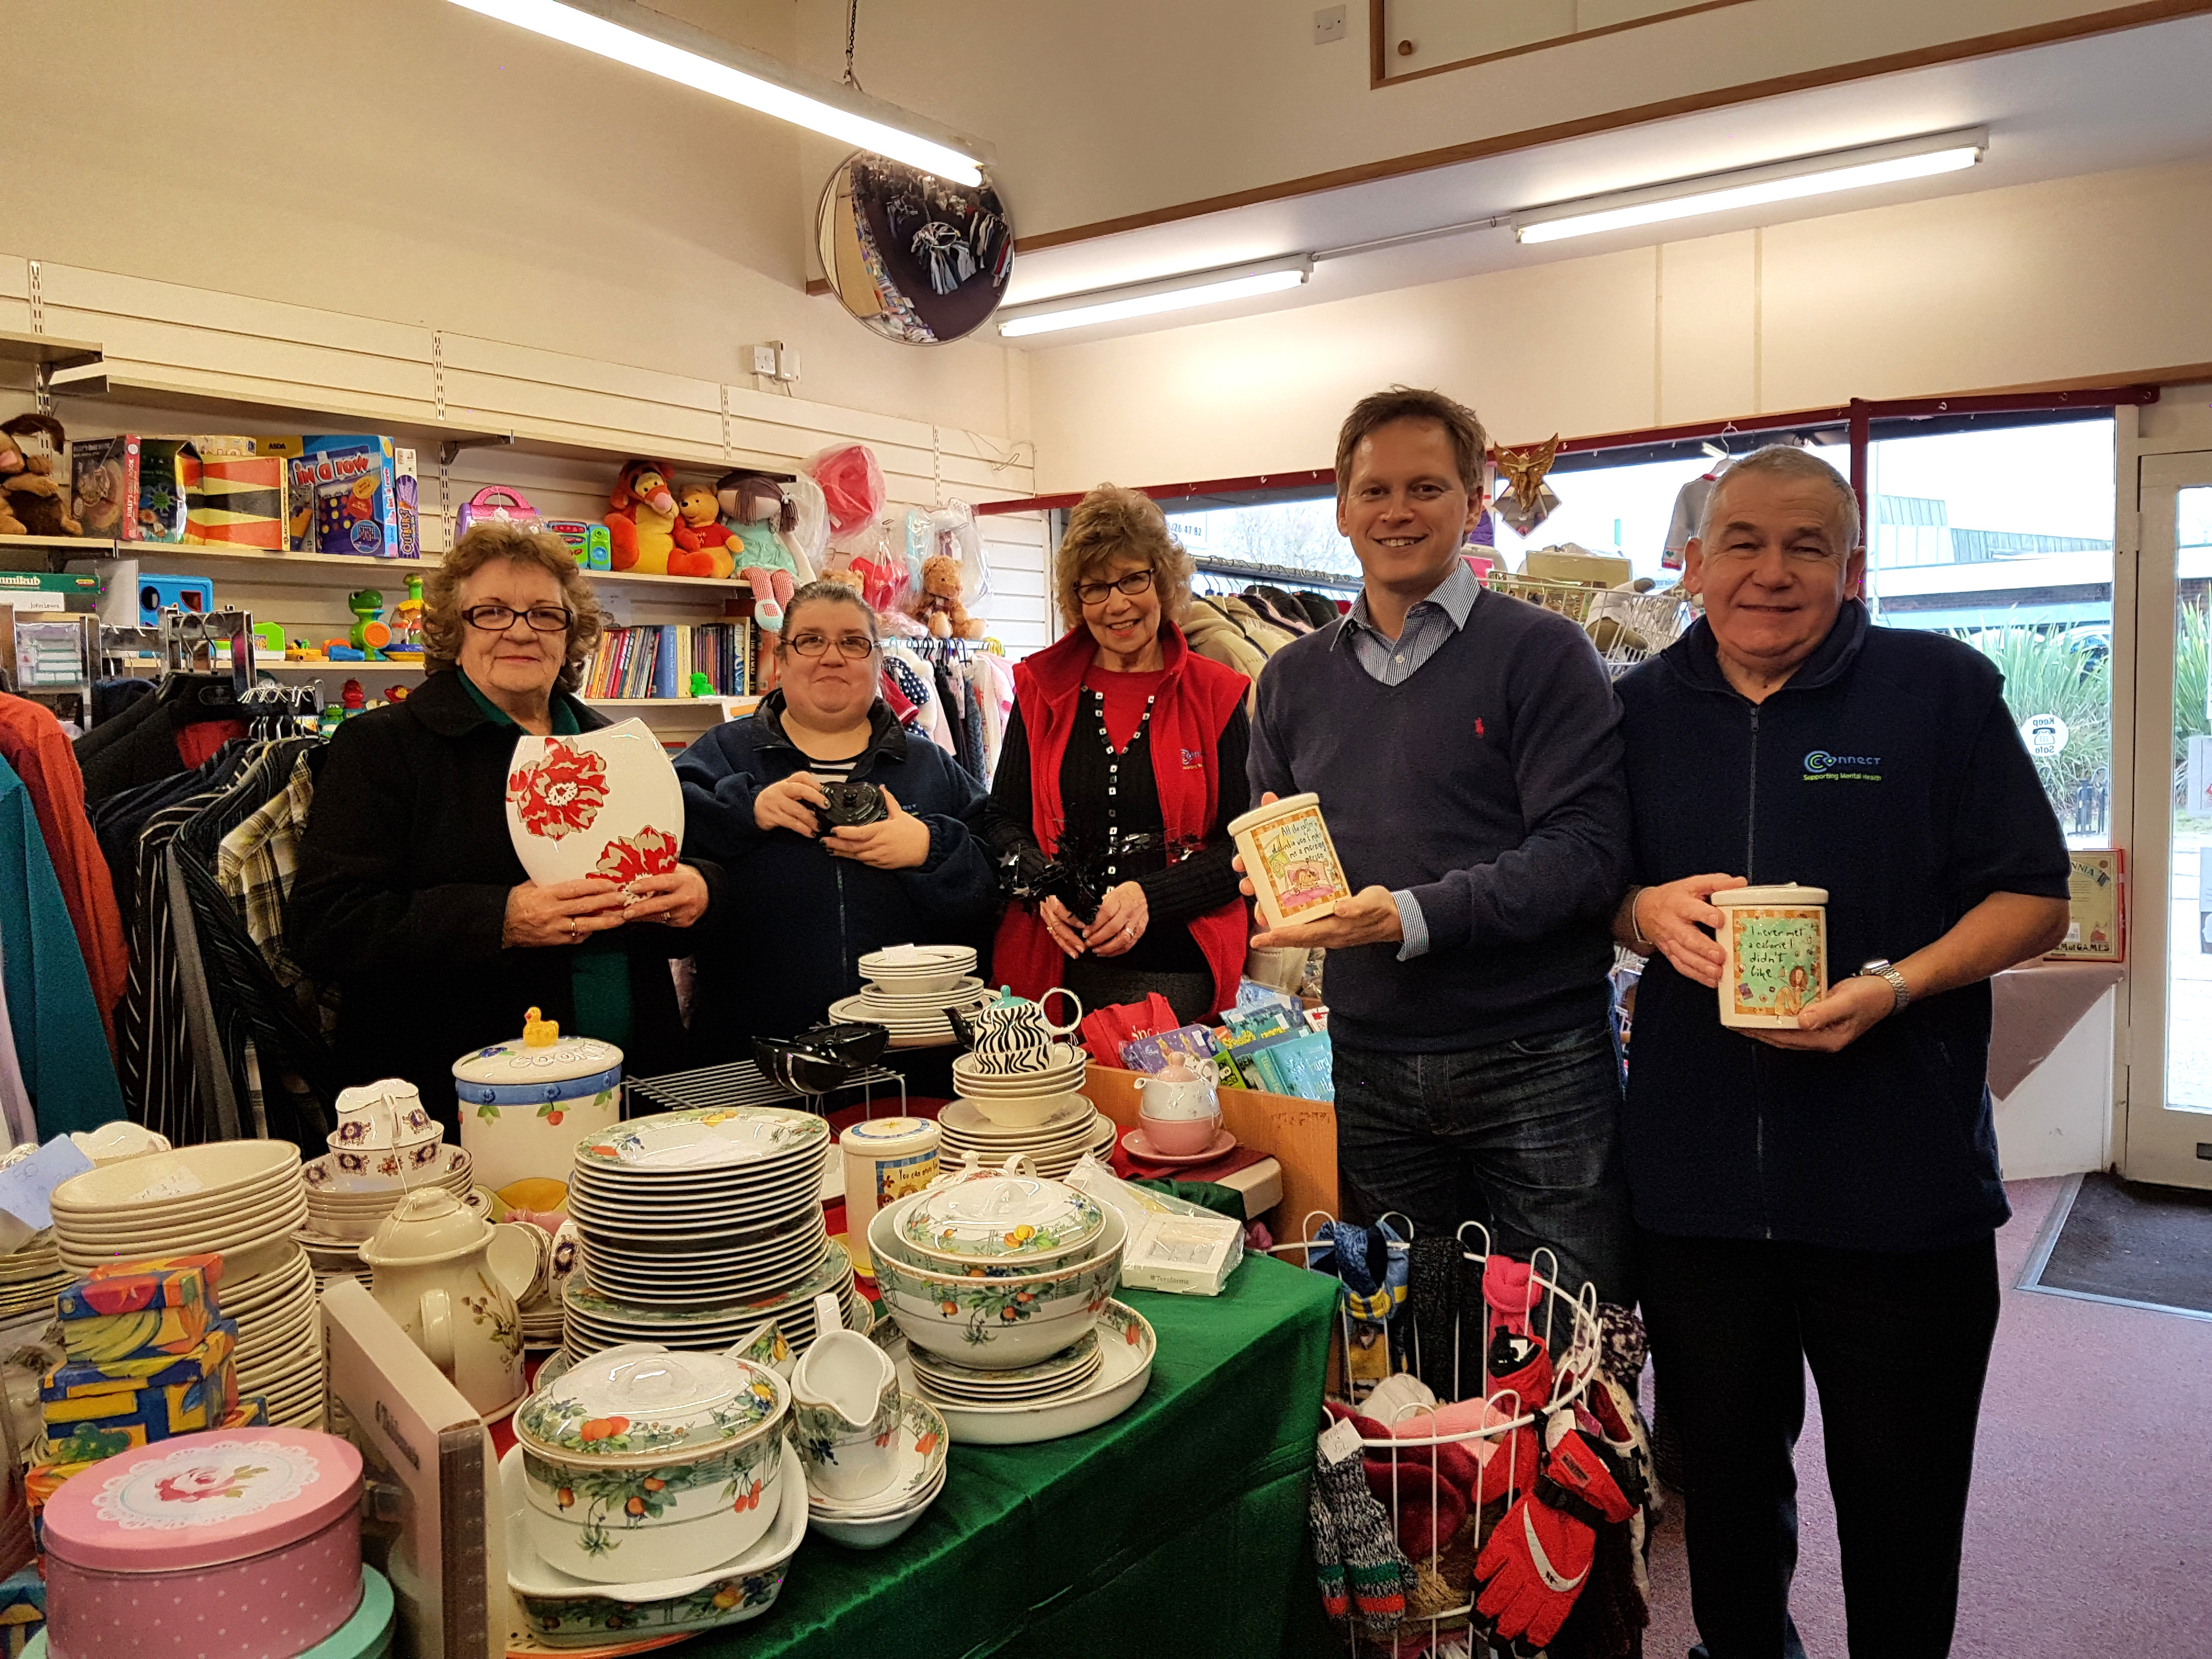 Grant visits Wot-Nots Charity Shop in Hatfield